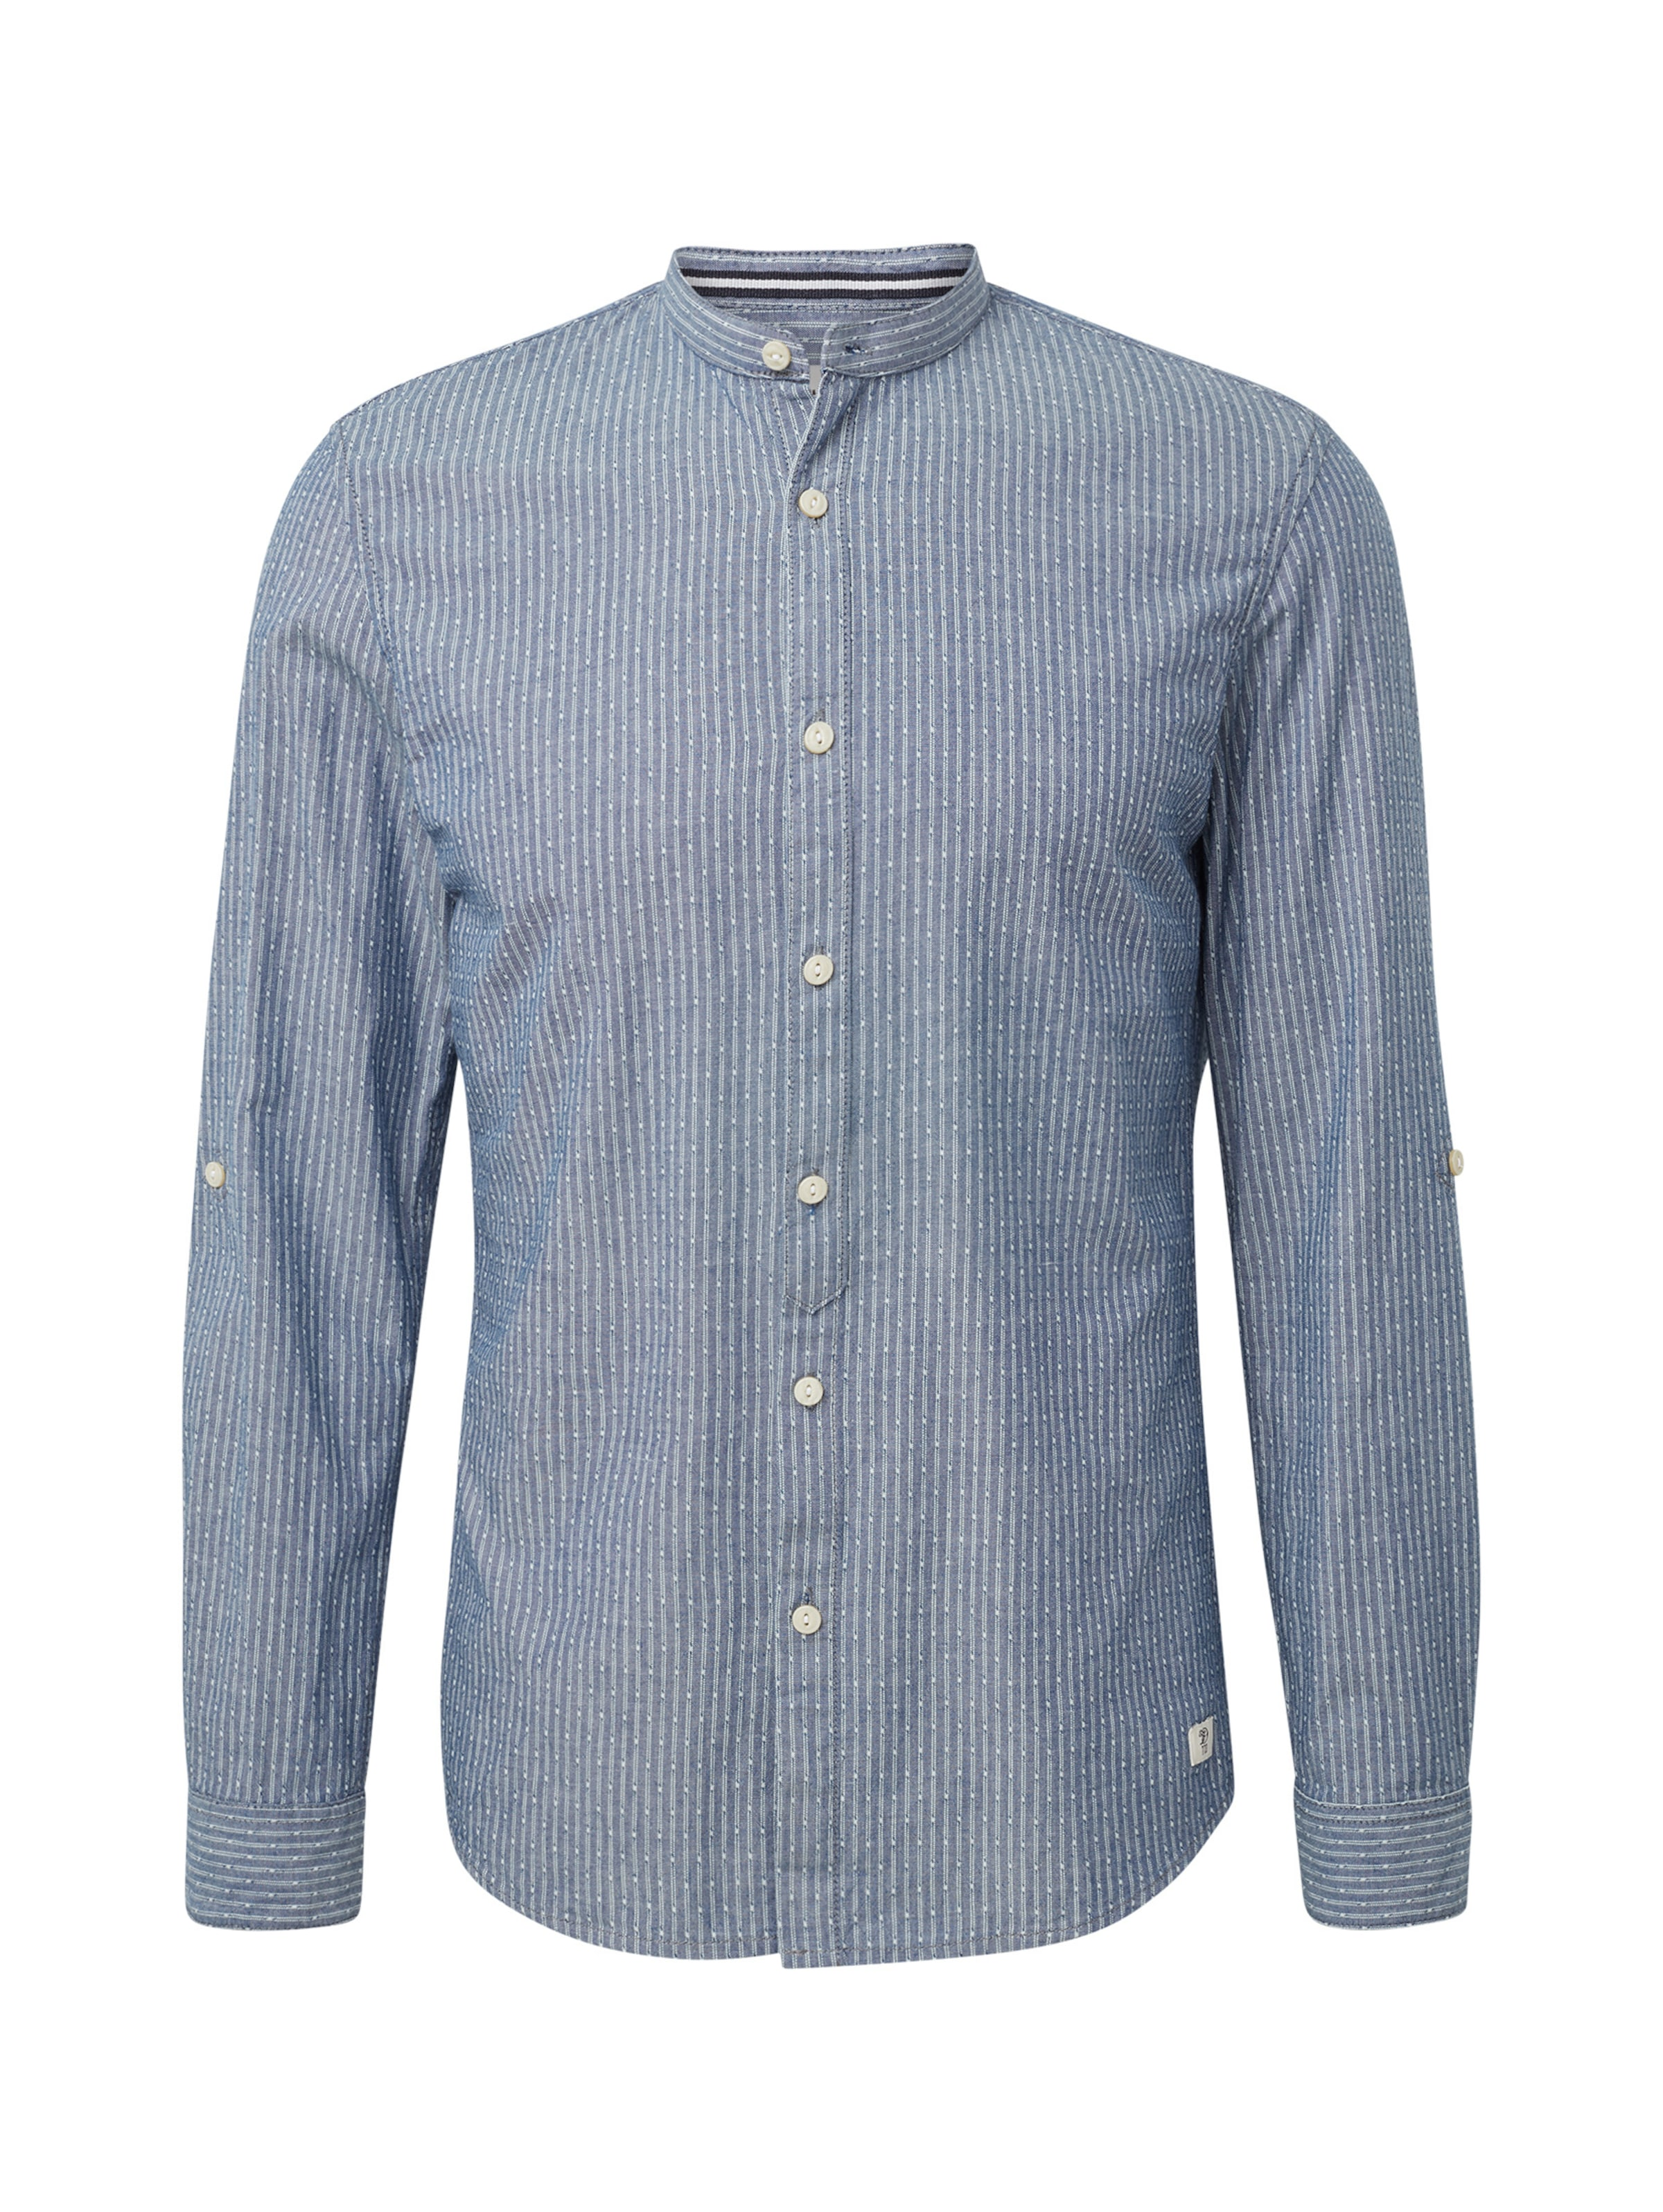 In Denim Tom Tailor Hemd BlauWeiß N0Oyvm8nw